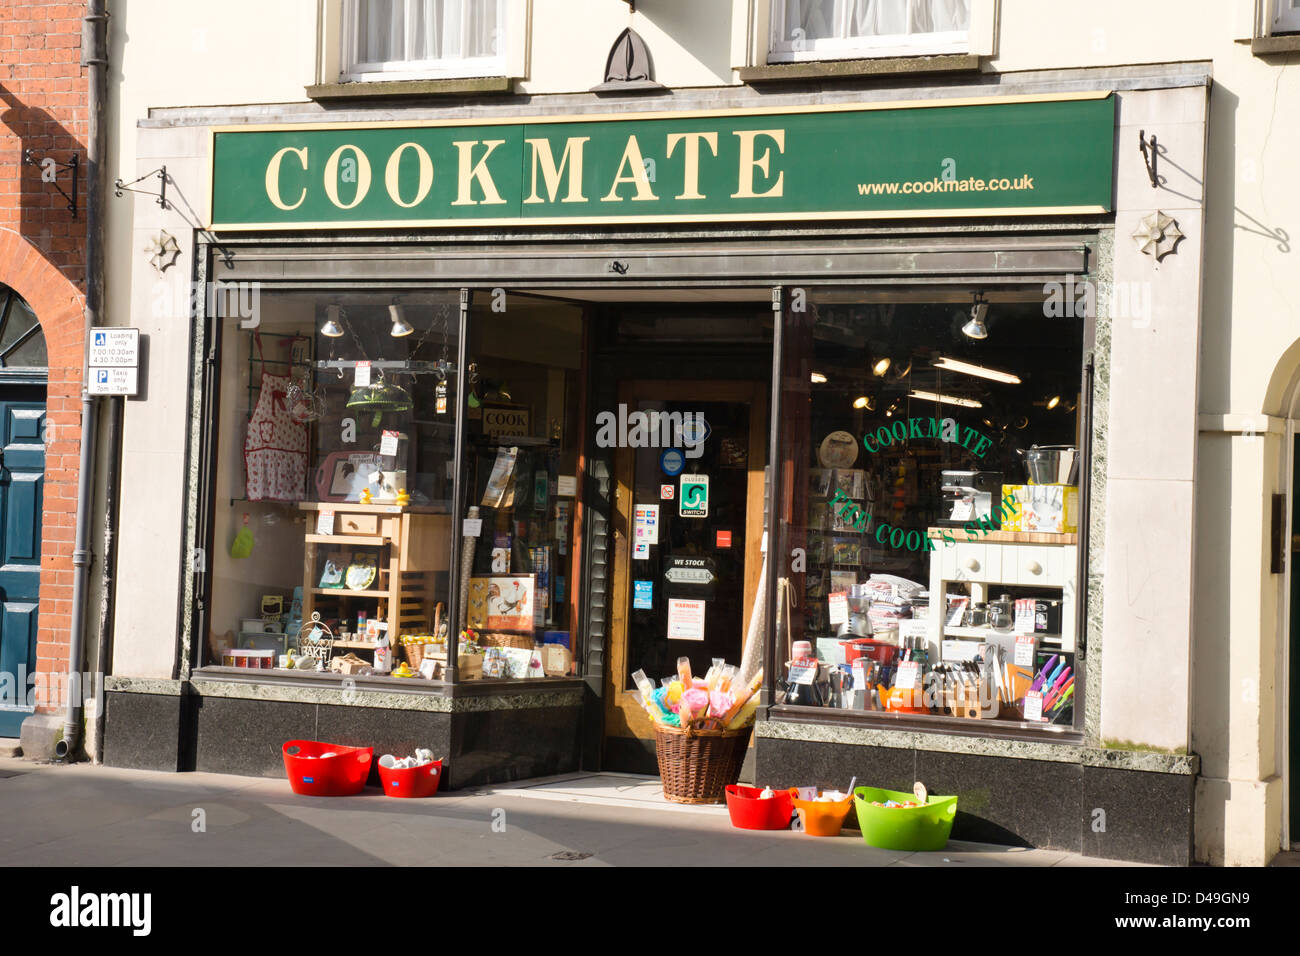 Hereford, cuisine indépendante une Cookmate shop. Photo Stock